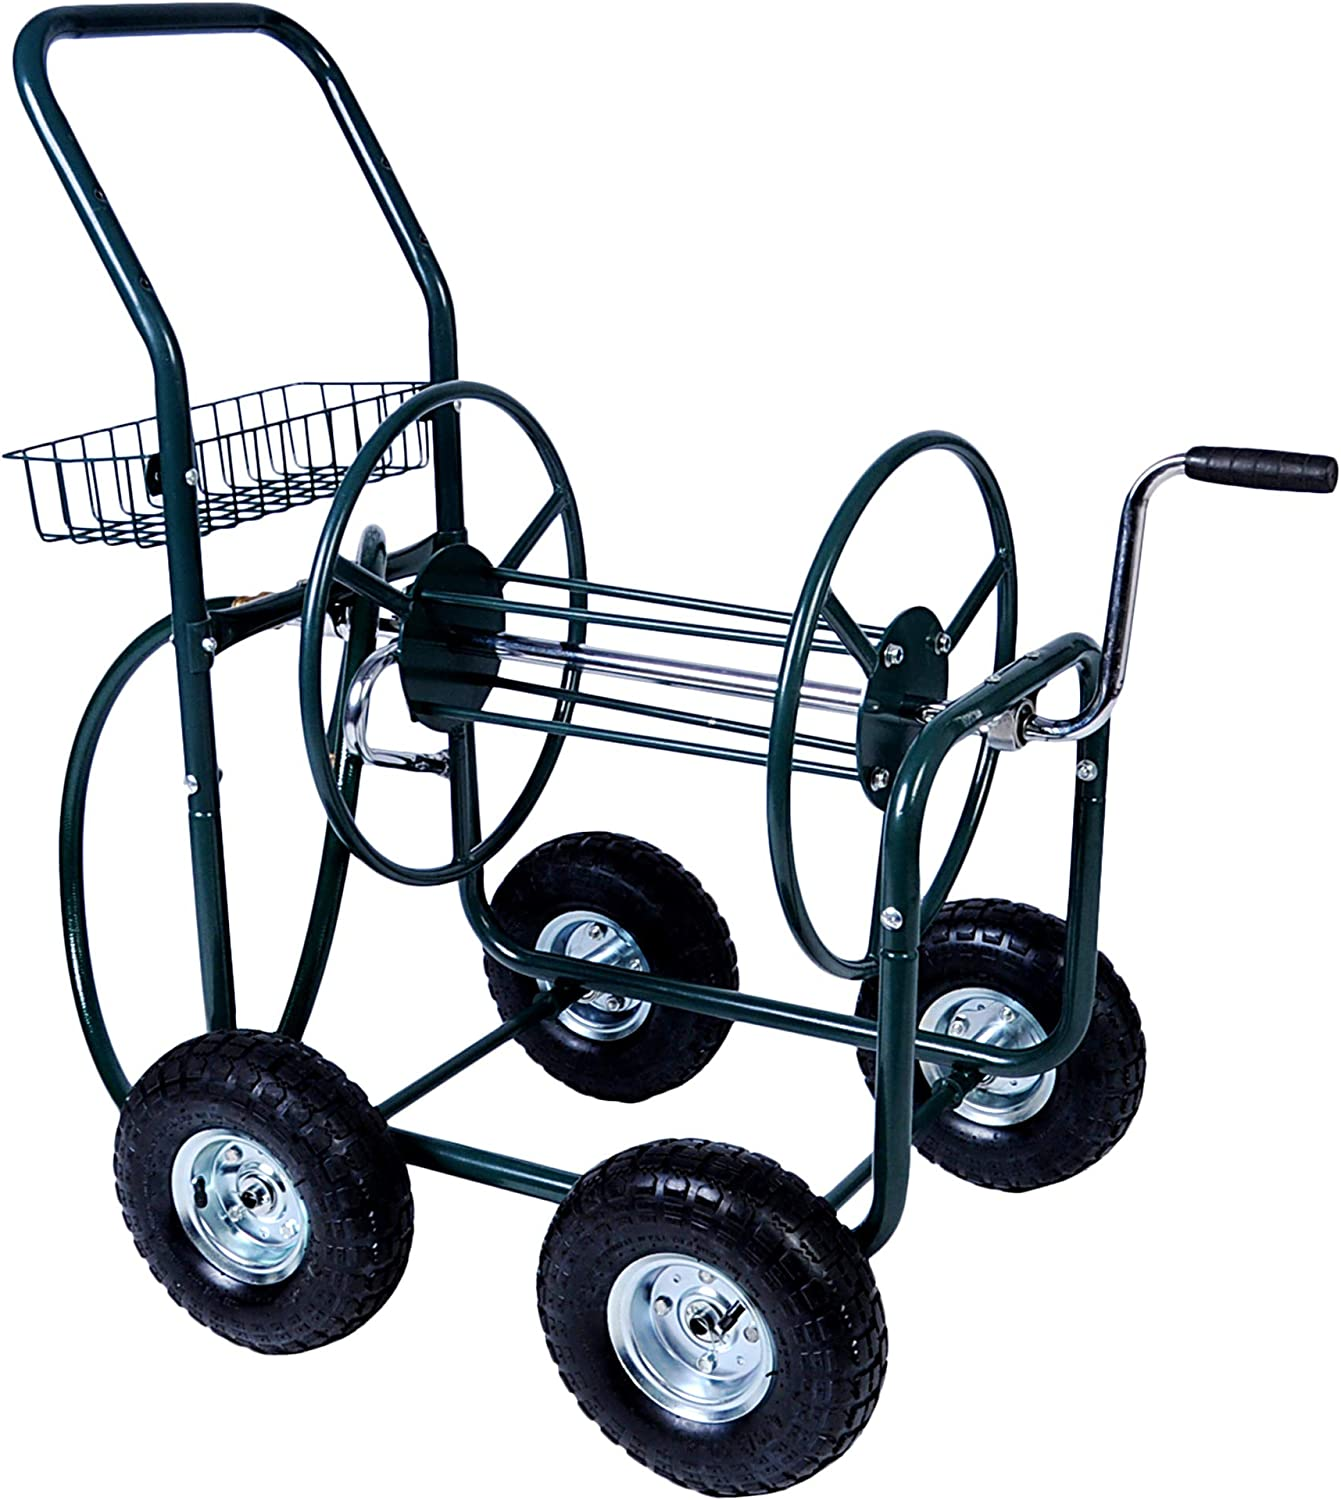 KARMAS PRODUCT Garden Hose Reel Cart Stor Portable Dealing full price reduction 2021 autumn and winter new 4 Wheels with